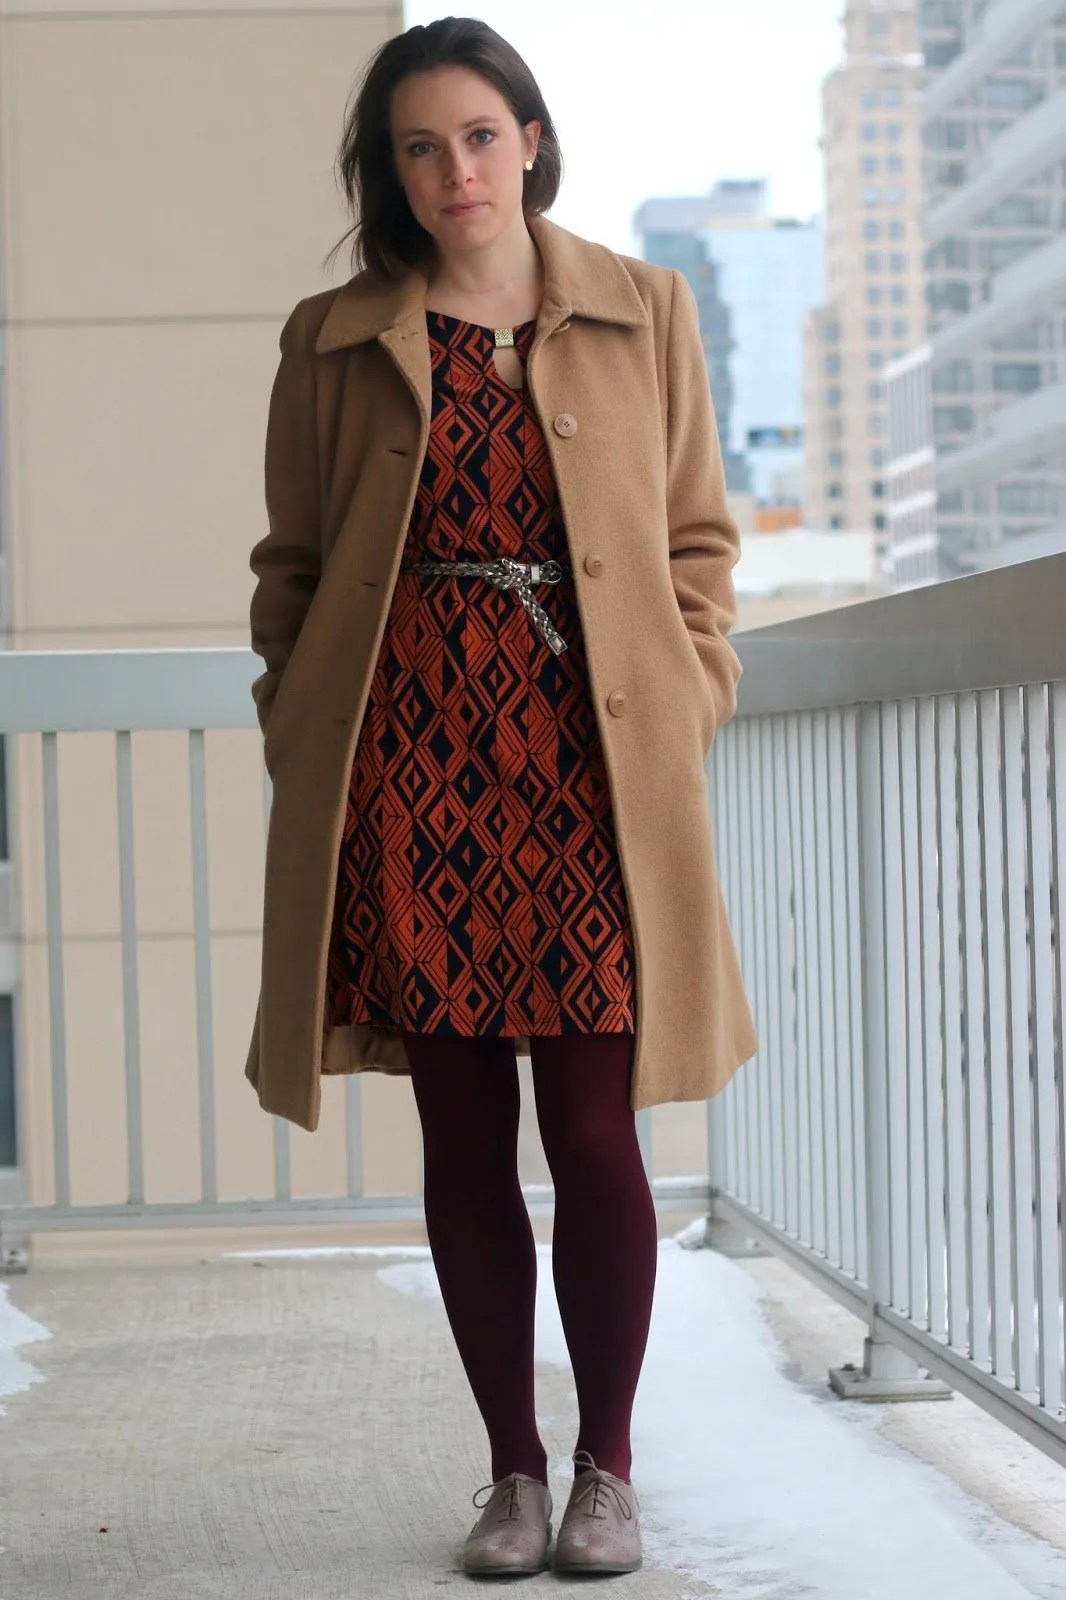 FashionablyEmployed.com | Orange and Navy geometric pattern dress, burgundy tights, gray belt and oxfords, camel winter coat | wear to work outfit, office style | versatile wardrobe workhorses